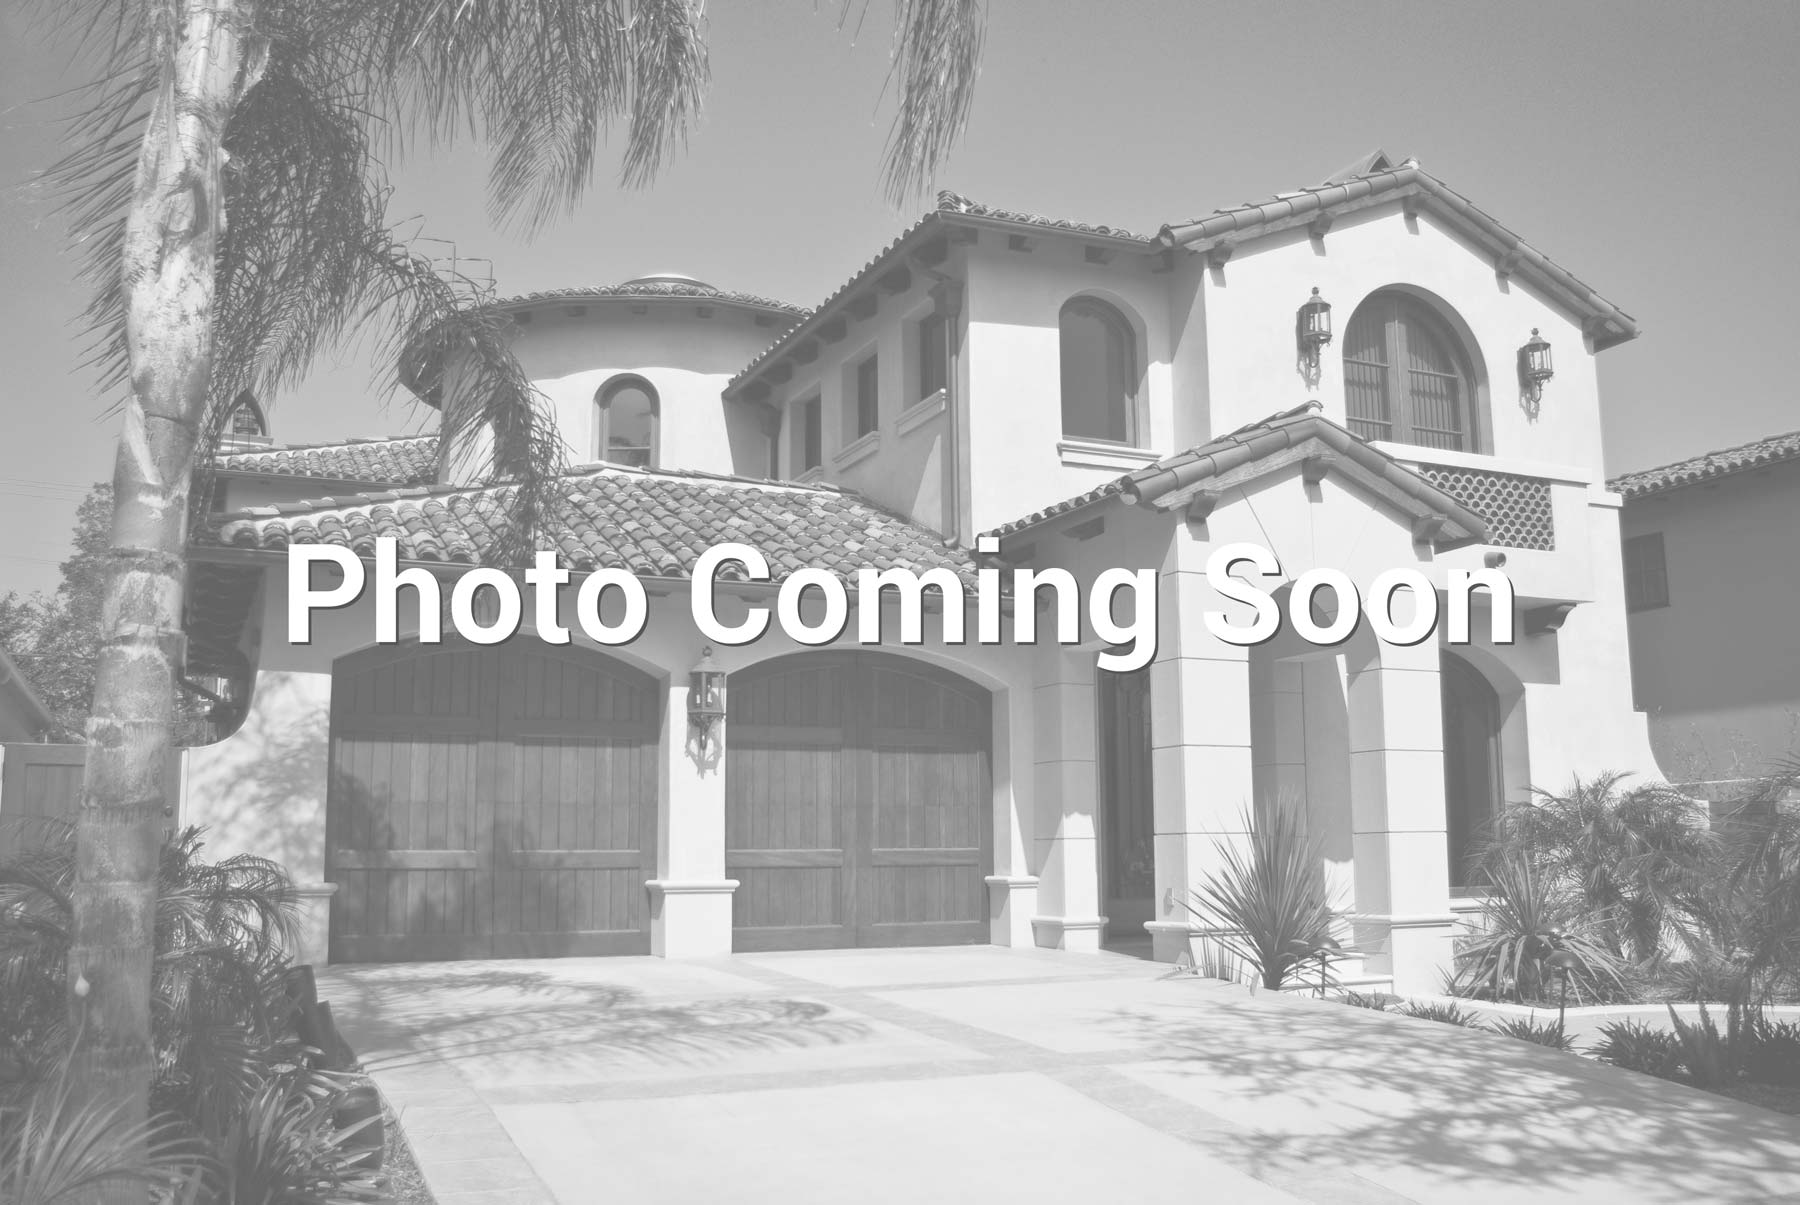 $50,000 - 3Br/1Ba -  for Sale in Fallbrook, Fallbrook